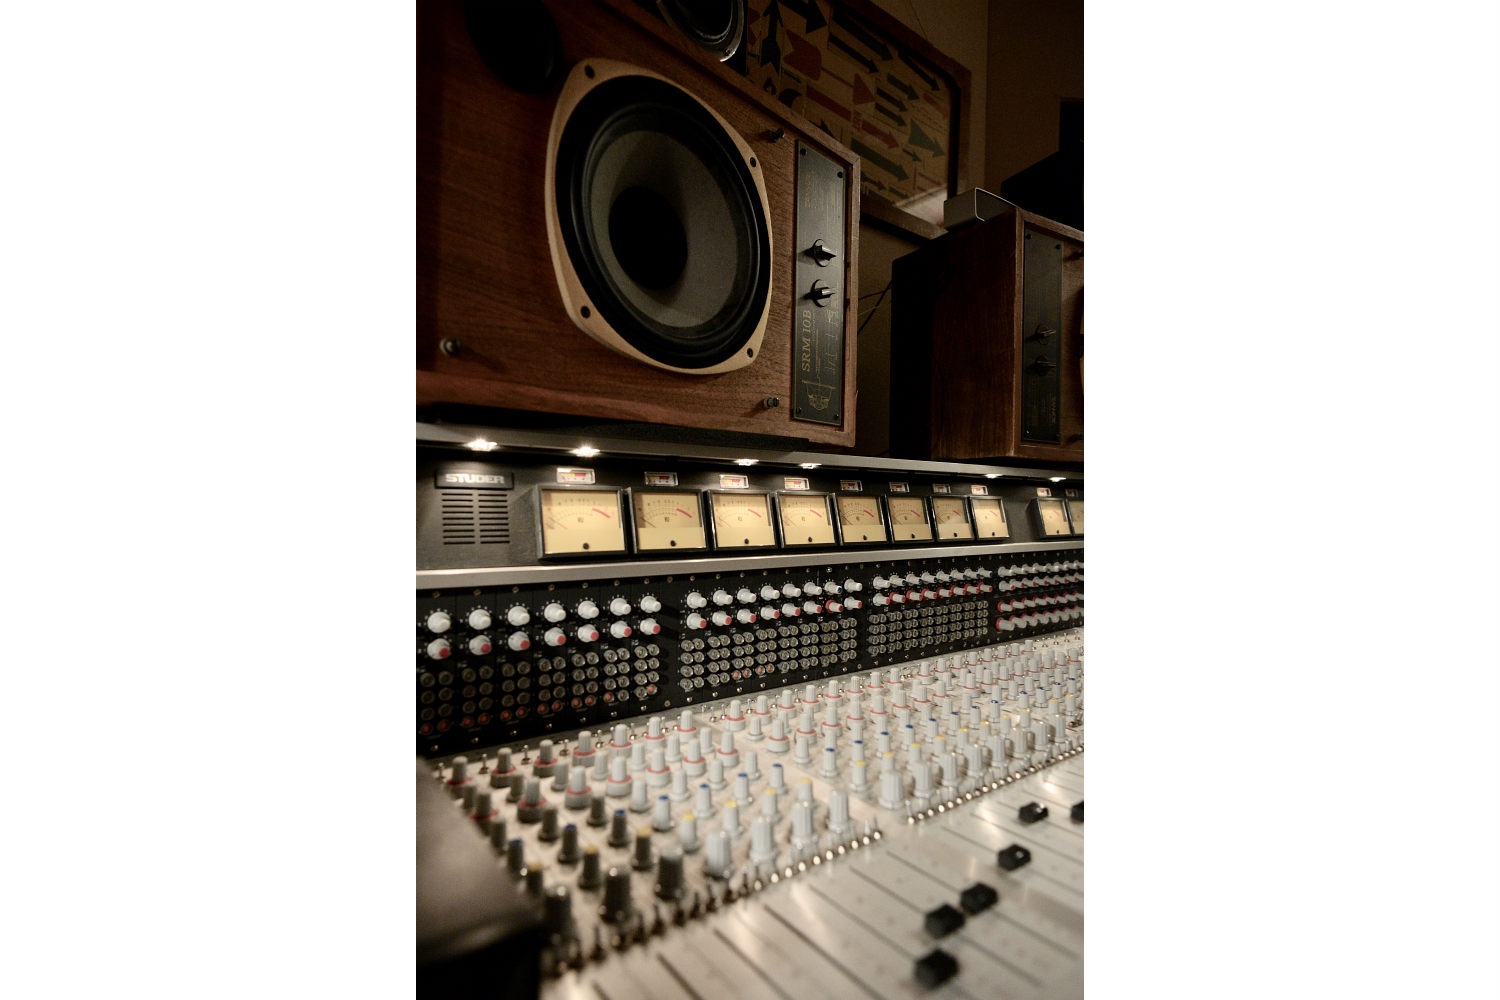 Jack Antonoff's XL Studios from his XL Recordings label, located in Soho, NYC, designed by WSDG. Close-up monitors